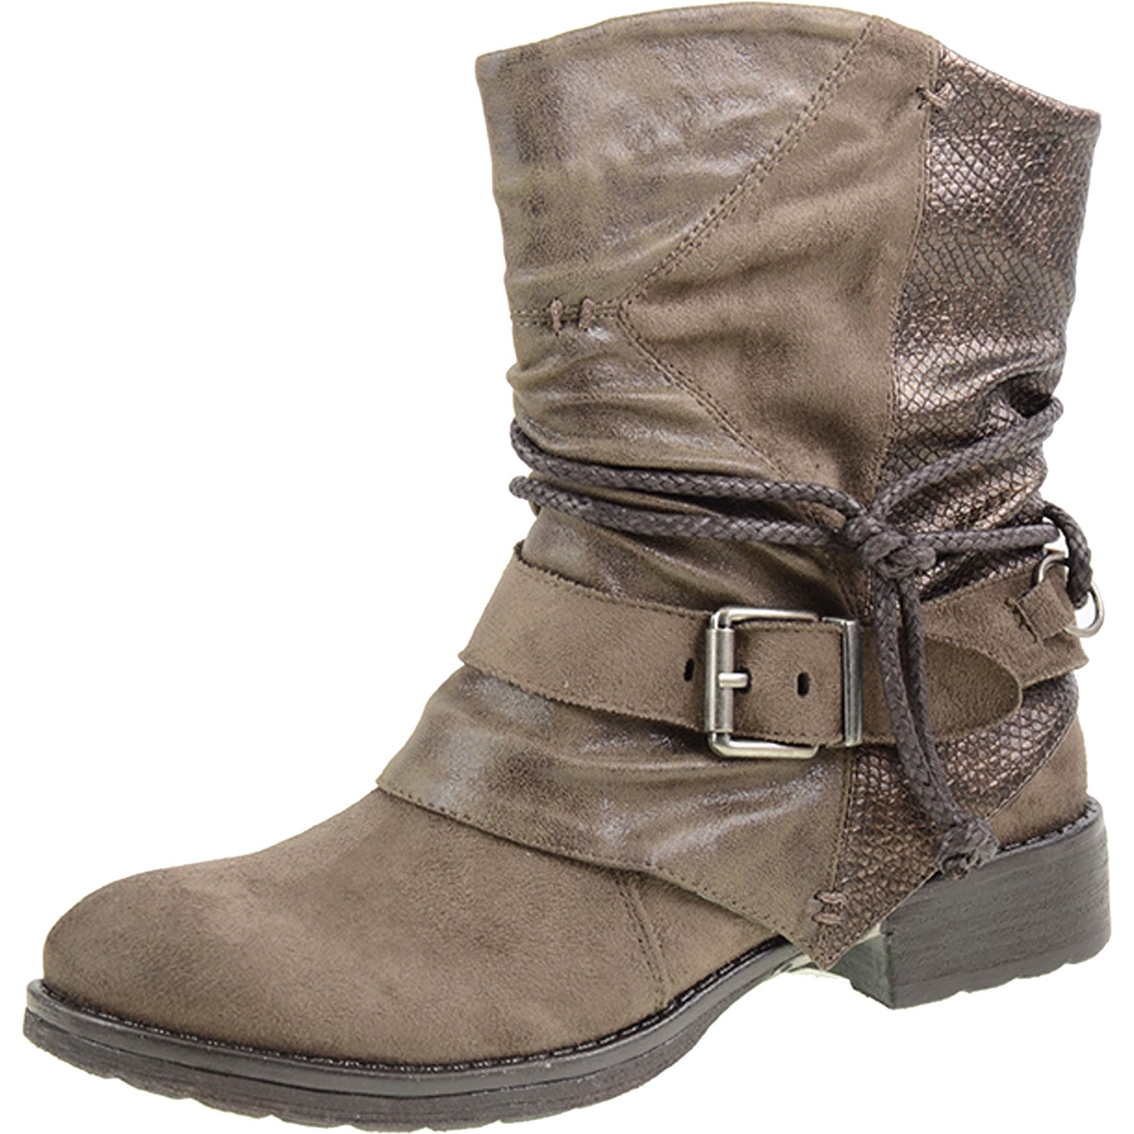 Dirty Laundry TTYL Short Engineer Boots